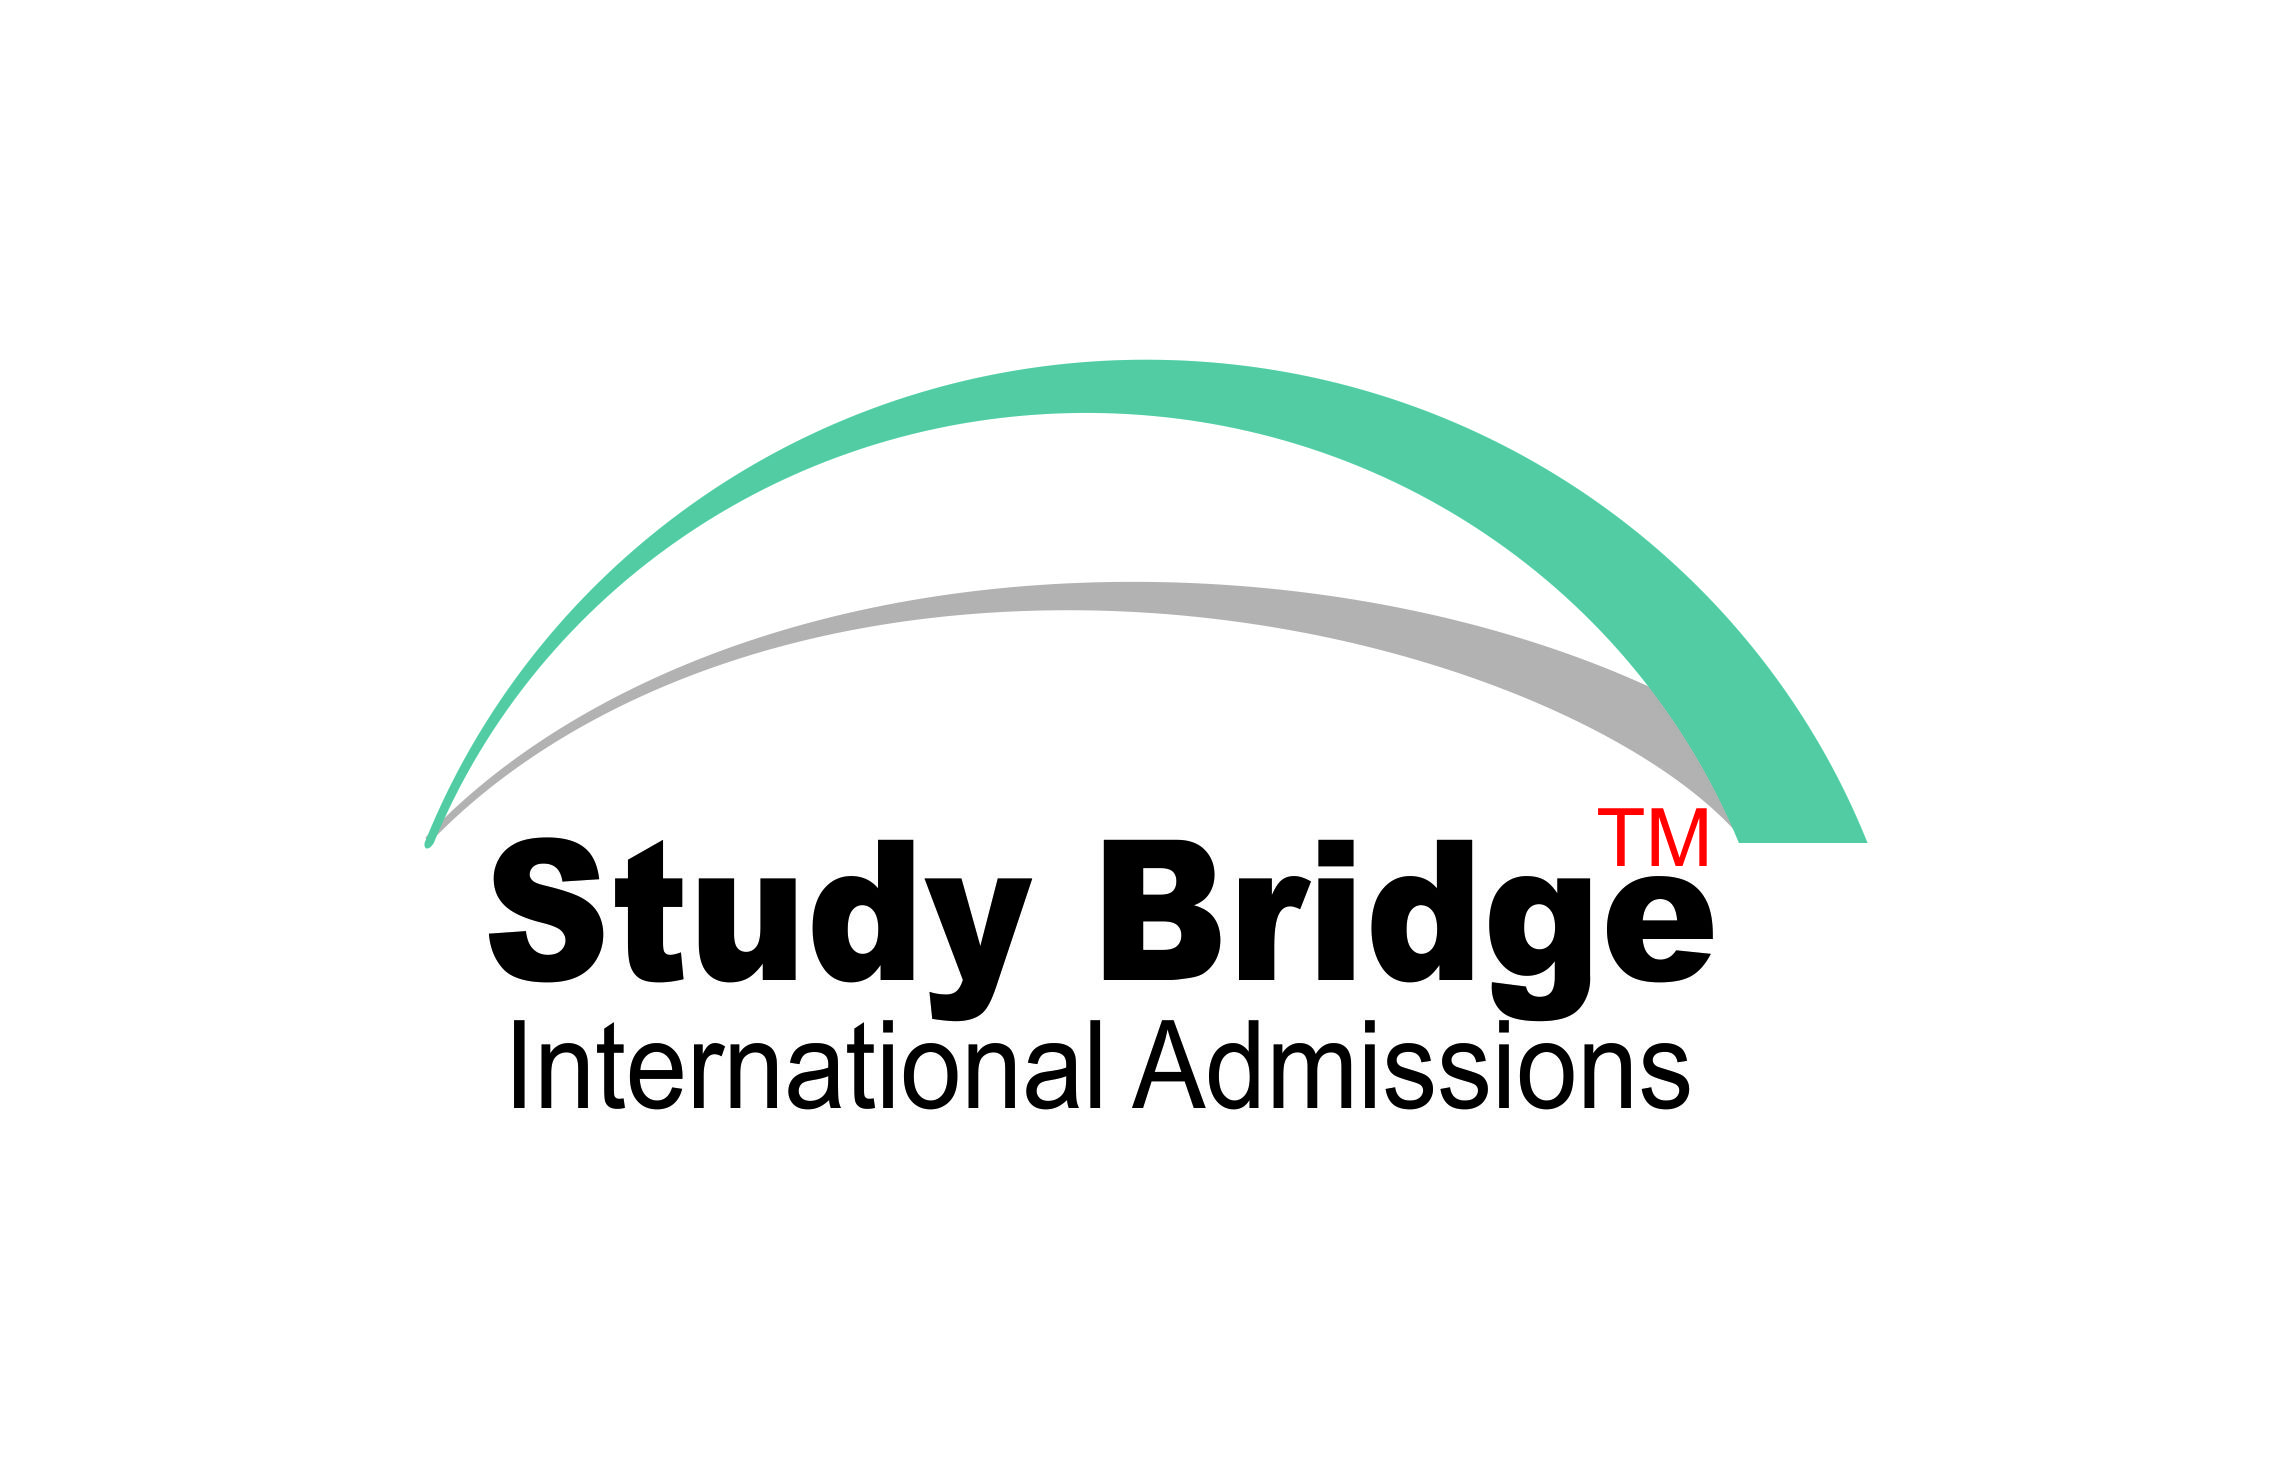 https://www.studyabroad.pk/images/companyLogo/Shahbaz ChishtiBritish Council Trained Education Consultants in Gujranwala Study Bridge 03319627799.jpg